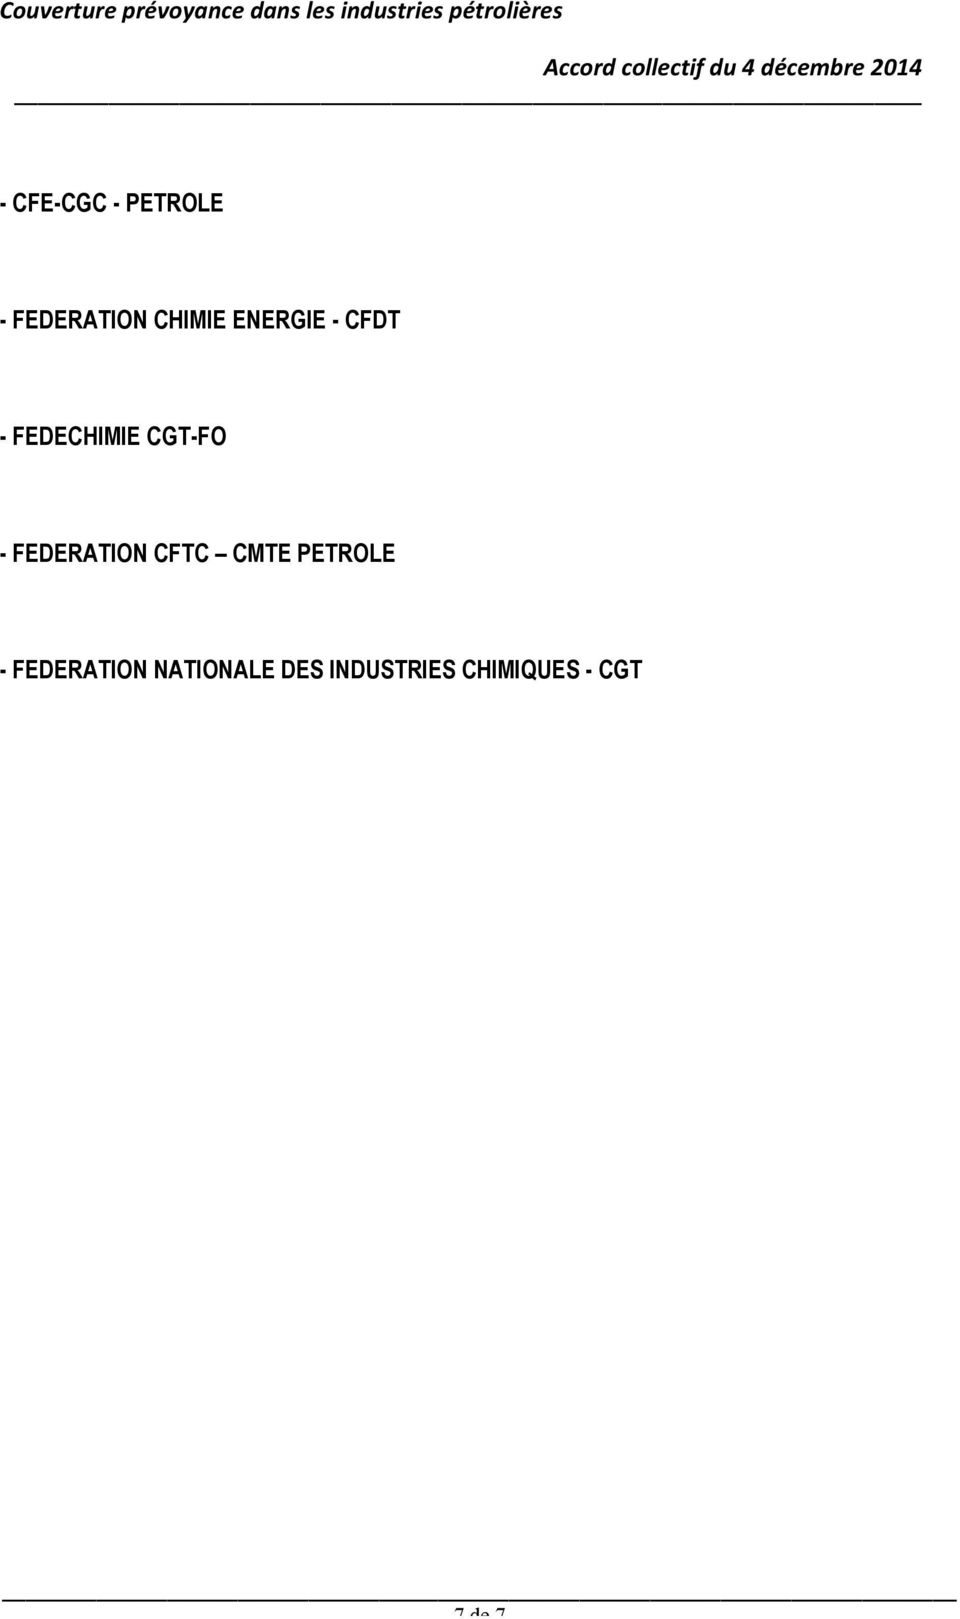 FEDERATION CFTC CMTE PETROLE - FEDERATION